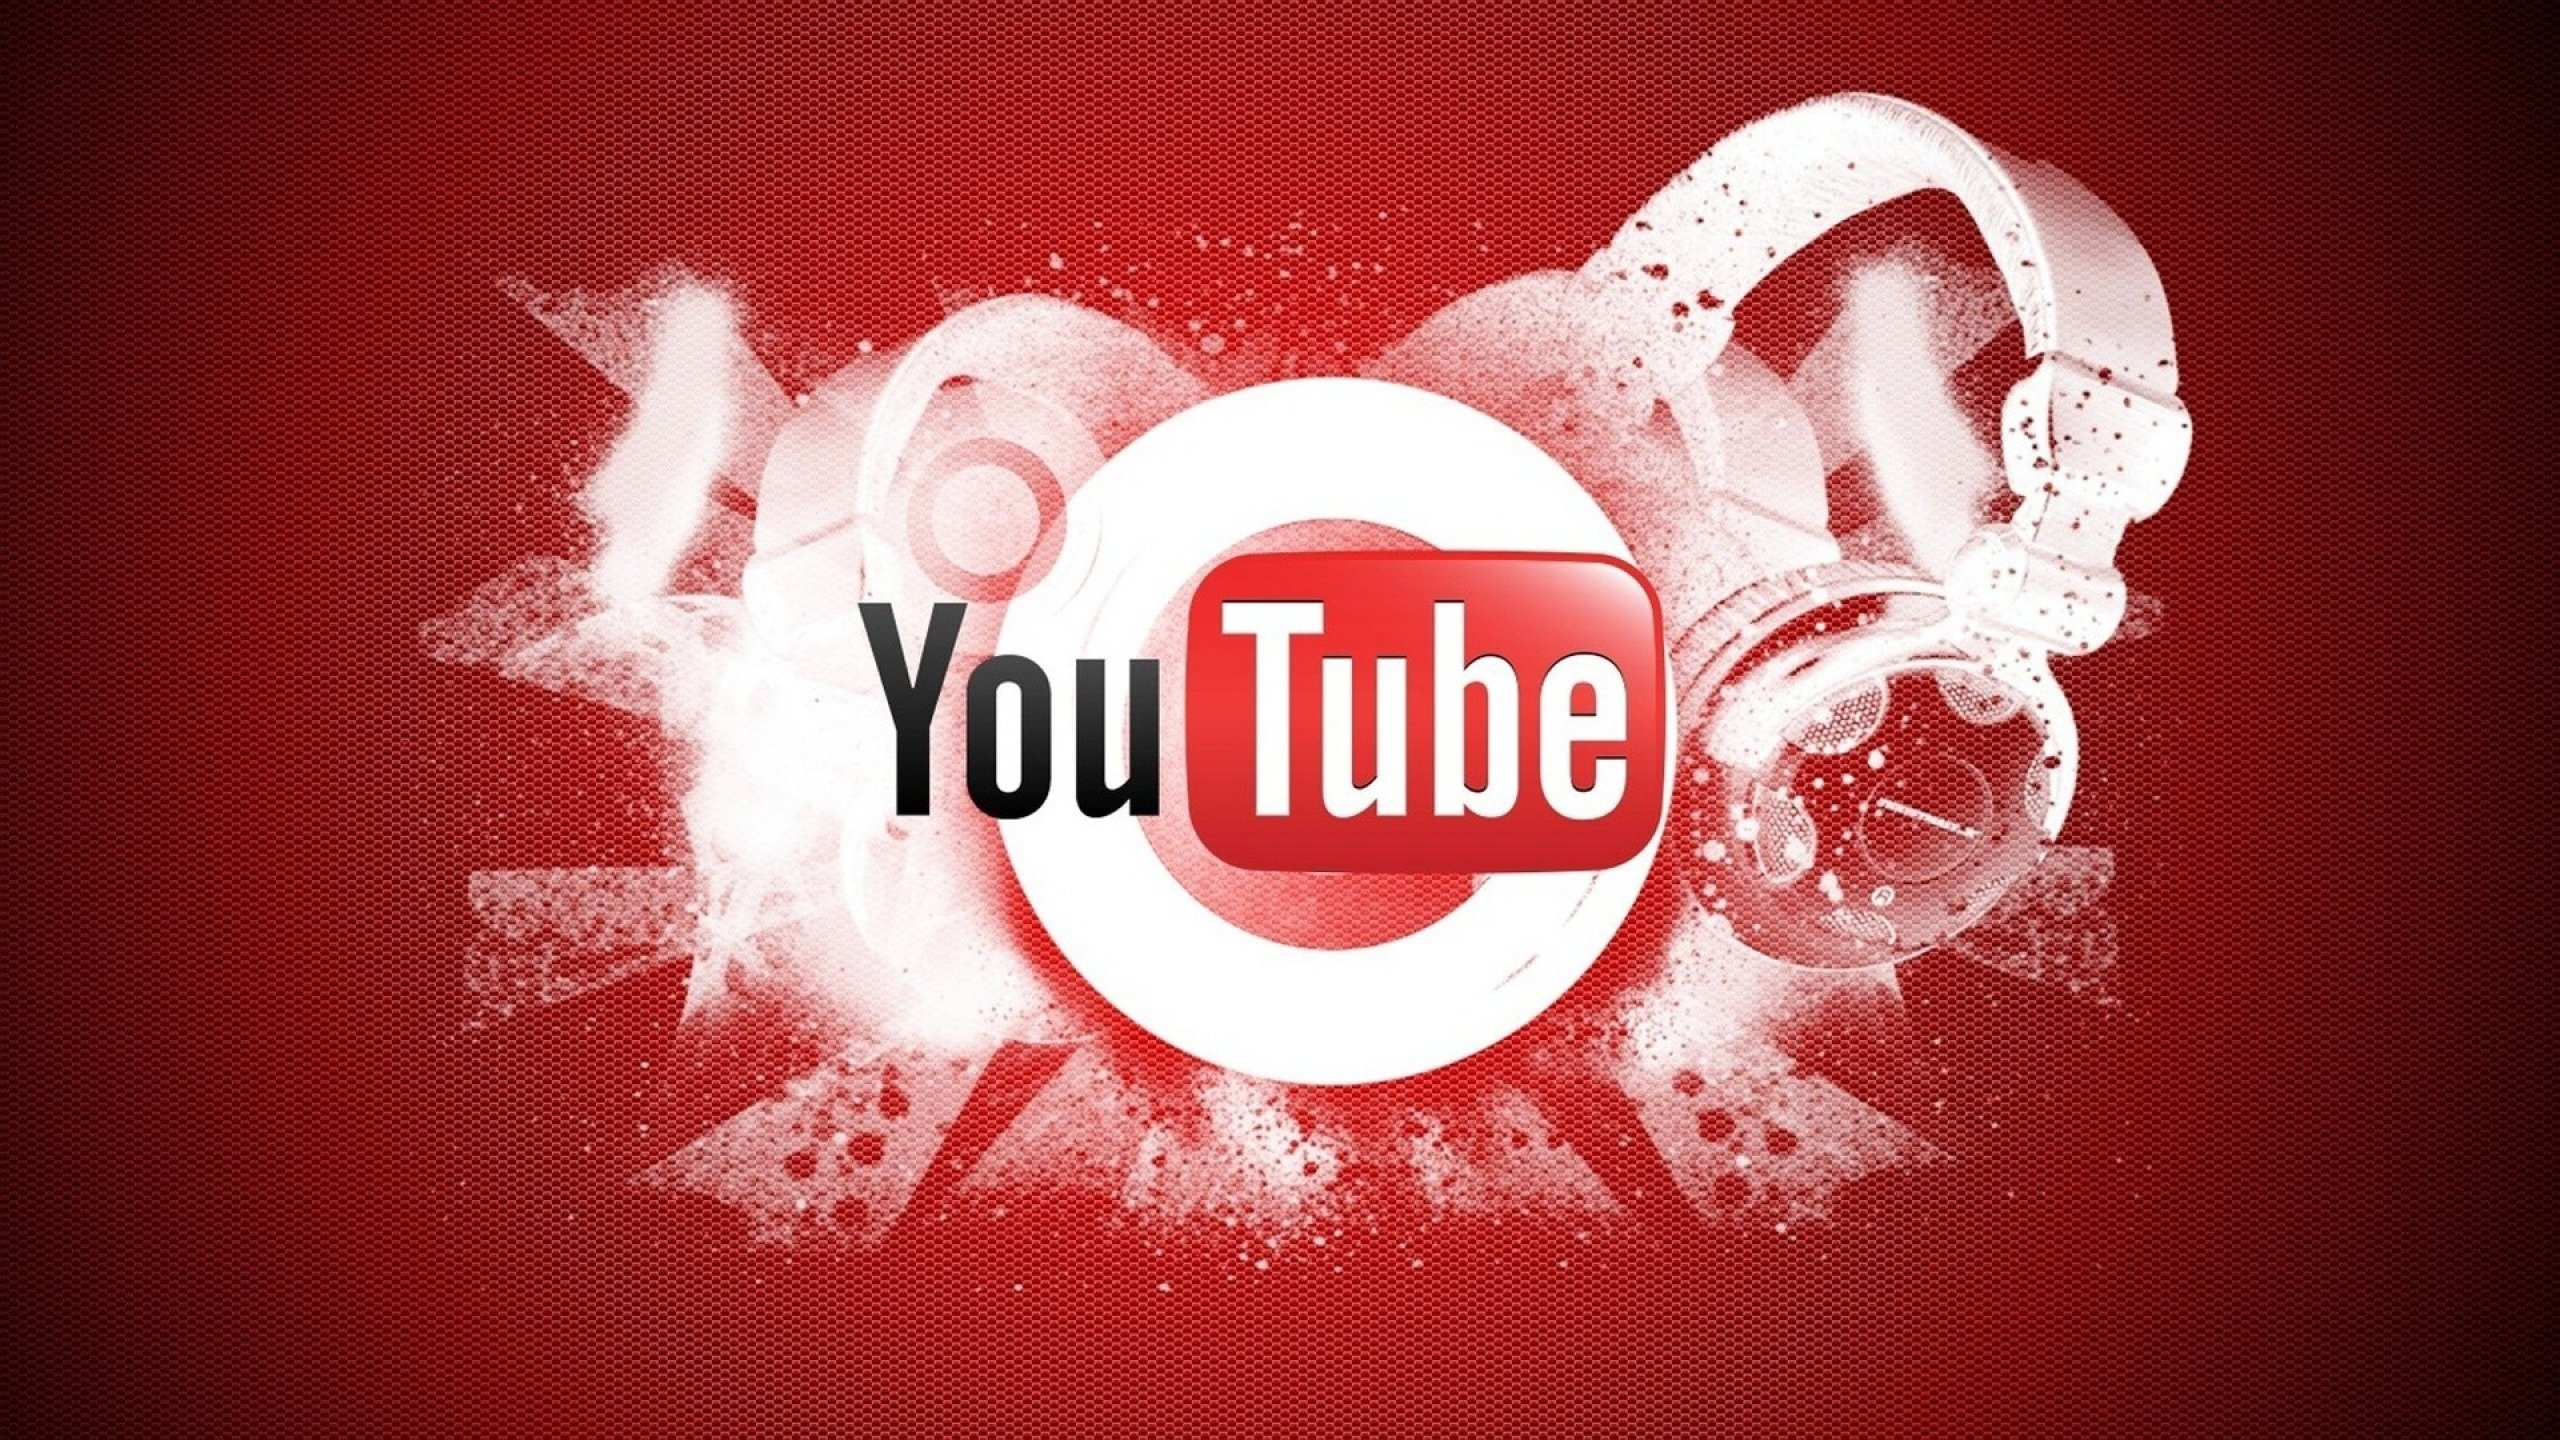 YouTube Themes